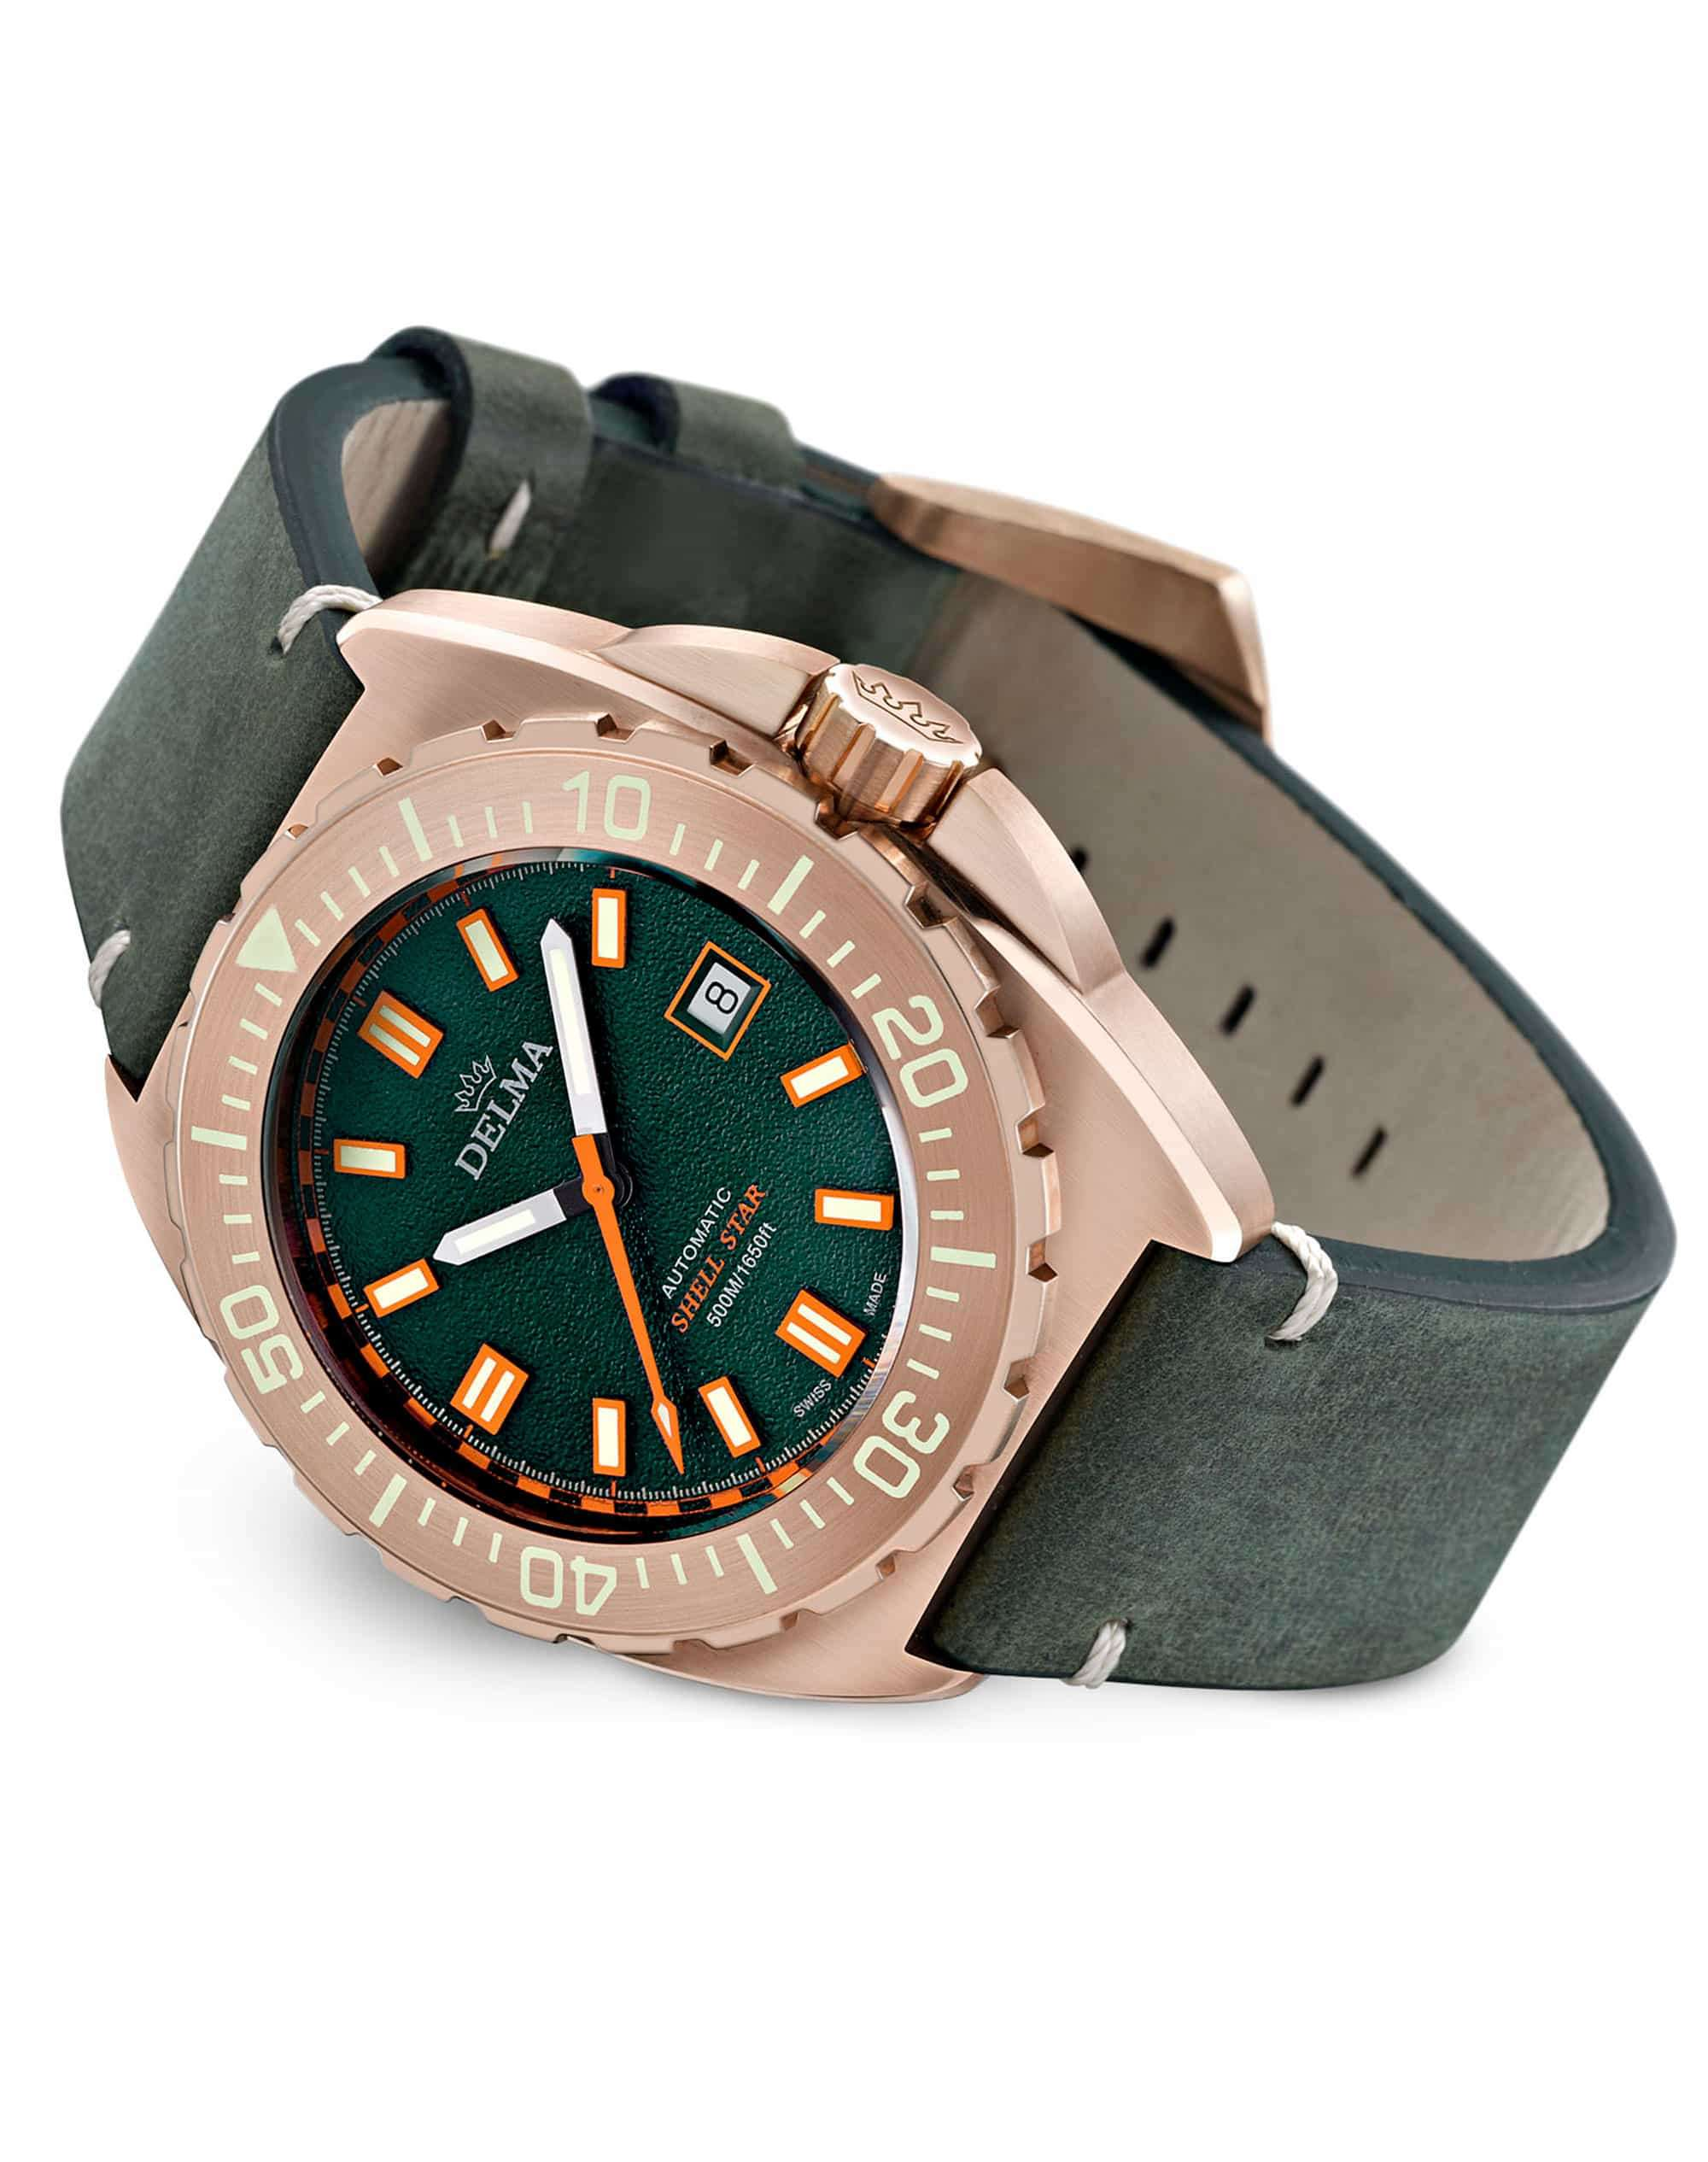 Delma Shell Star Bronze Green Dial 31601.670.6.148 – Swiss Time